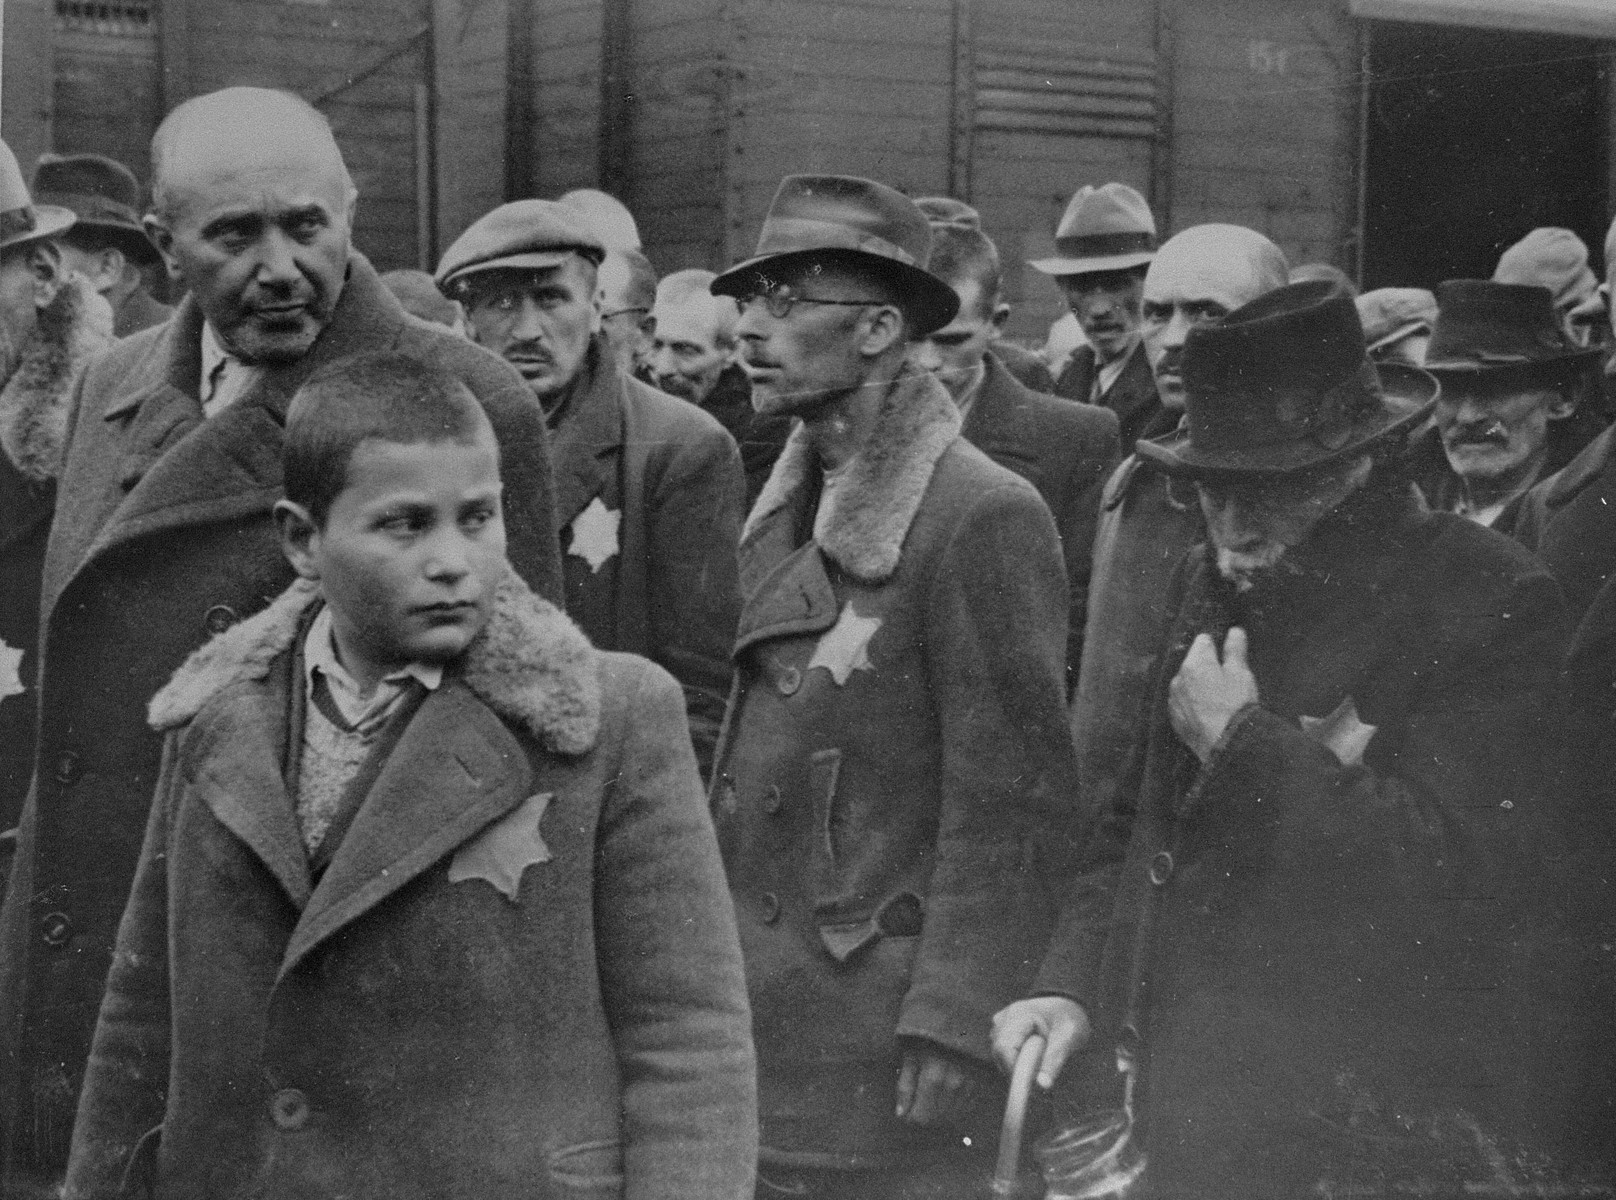 Jewish men and boys from Subcarpathian Rus await selection on the ramp at Auschwitz-Birkenau.  The man in the center wearing glasses is Sigmund Bruck, a mechanical engineer from Tab.  Bruck was denounced as a communist, arrested and deported to Nagy Kamizsa.  He was eventually sent to Auschwitz-Birkenau and then to Gleiwitz, where he was killed by a guard during an escape attempt.  To his left is Mr. Smilazick and his son.